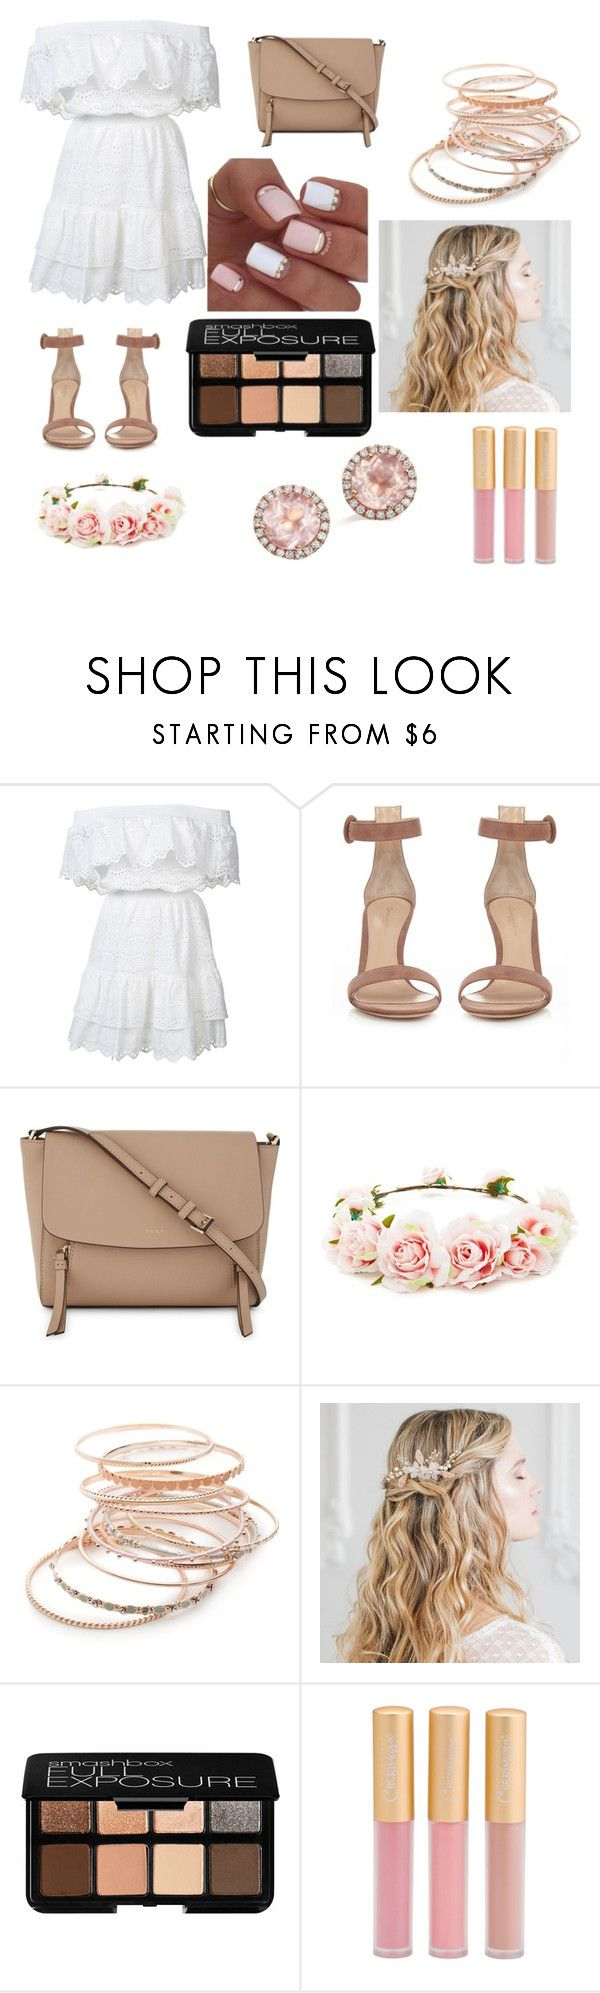 """#Пляжная_вечеринка"" by ivaskweek ❤ liked on Polyvore featuring LoveShackFancy, Gianvito Rossi, DKNY, Forever 21, Red Camel, Smashbox and Dana Rebecca Designs"